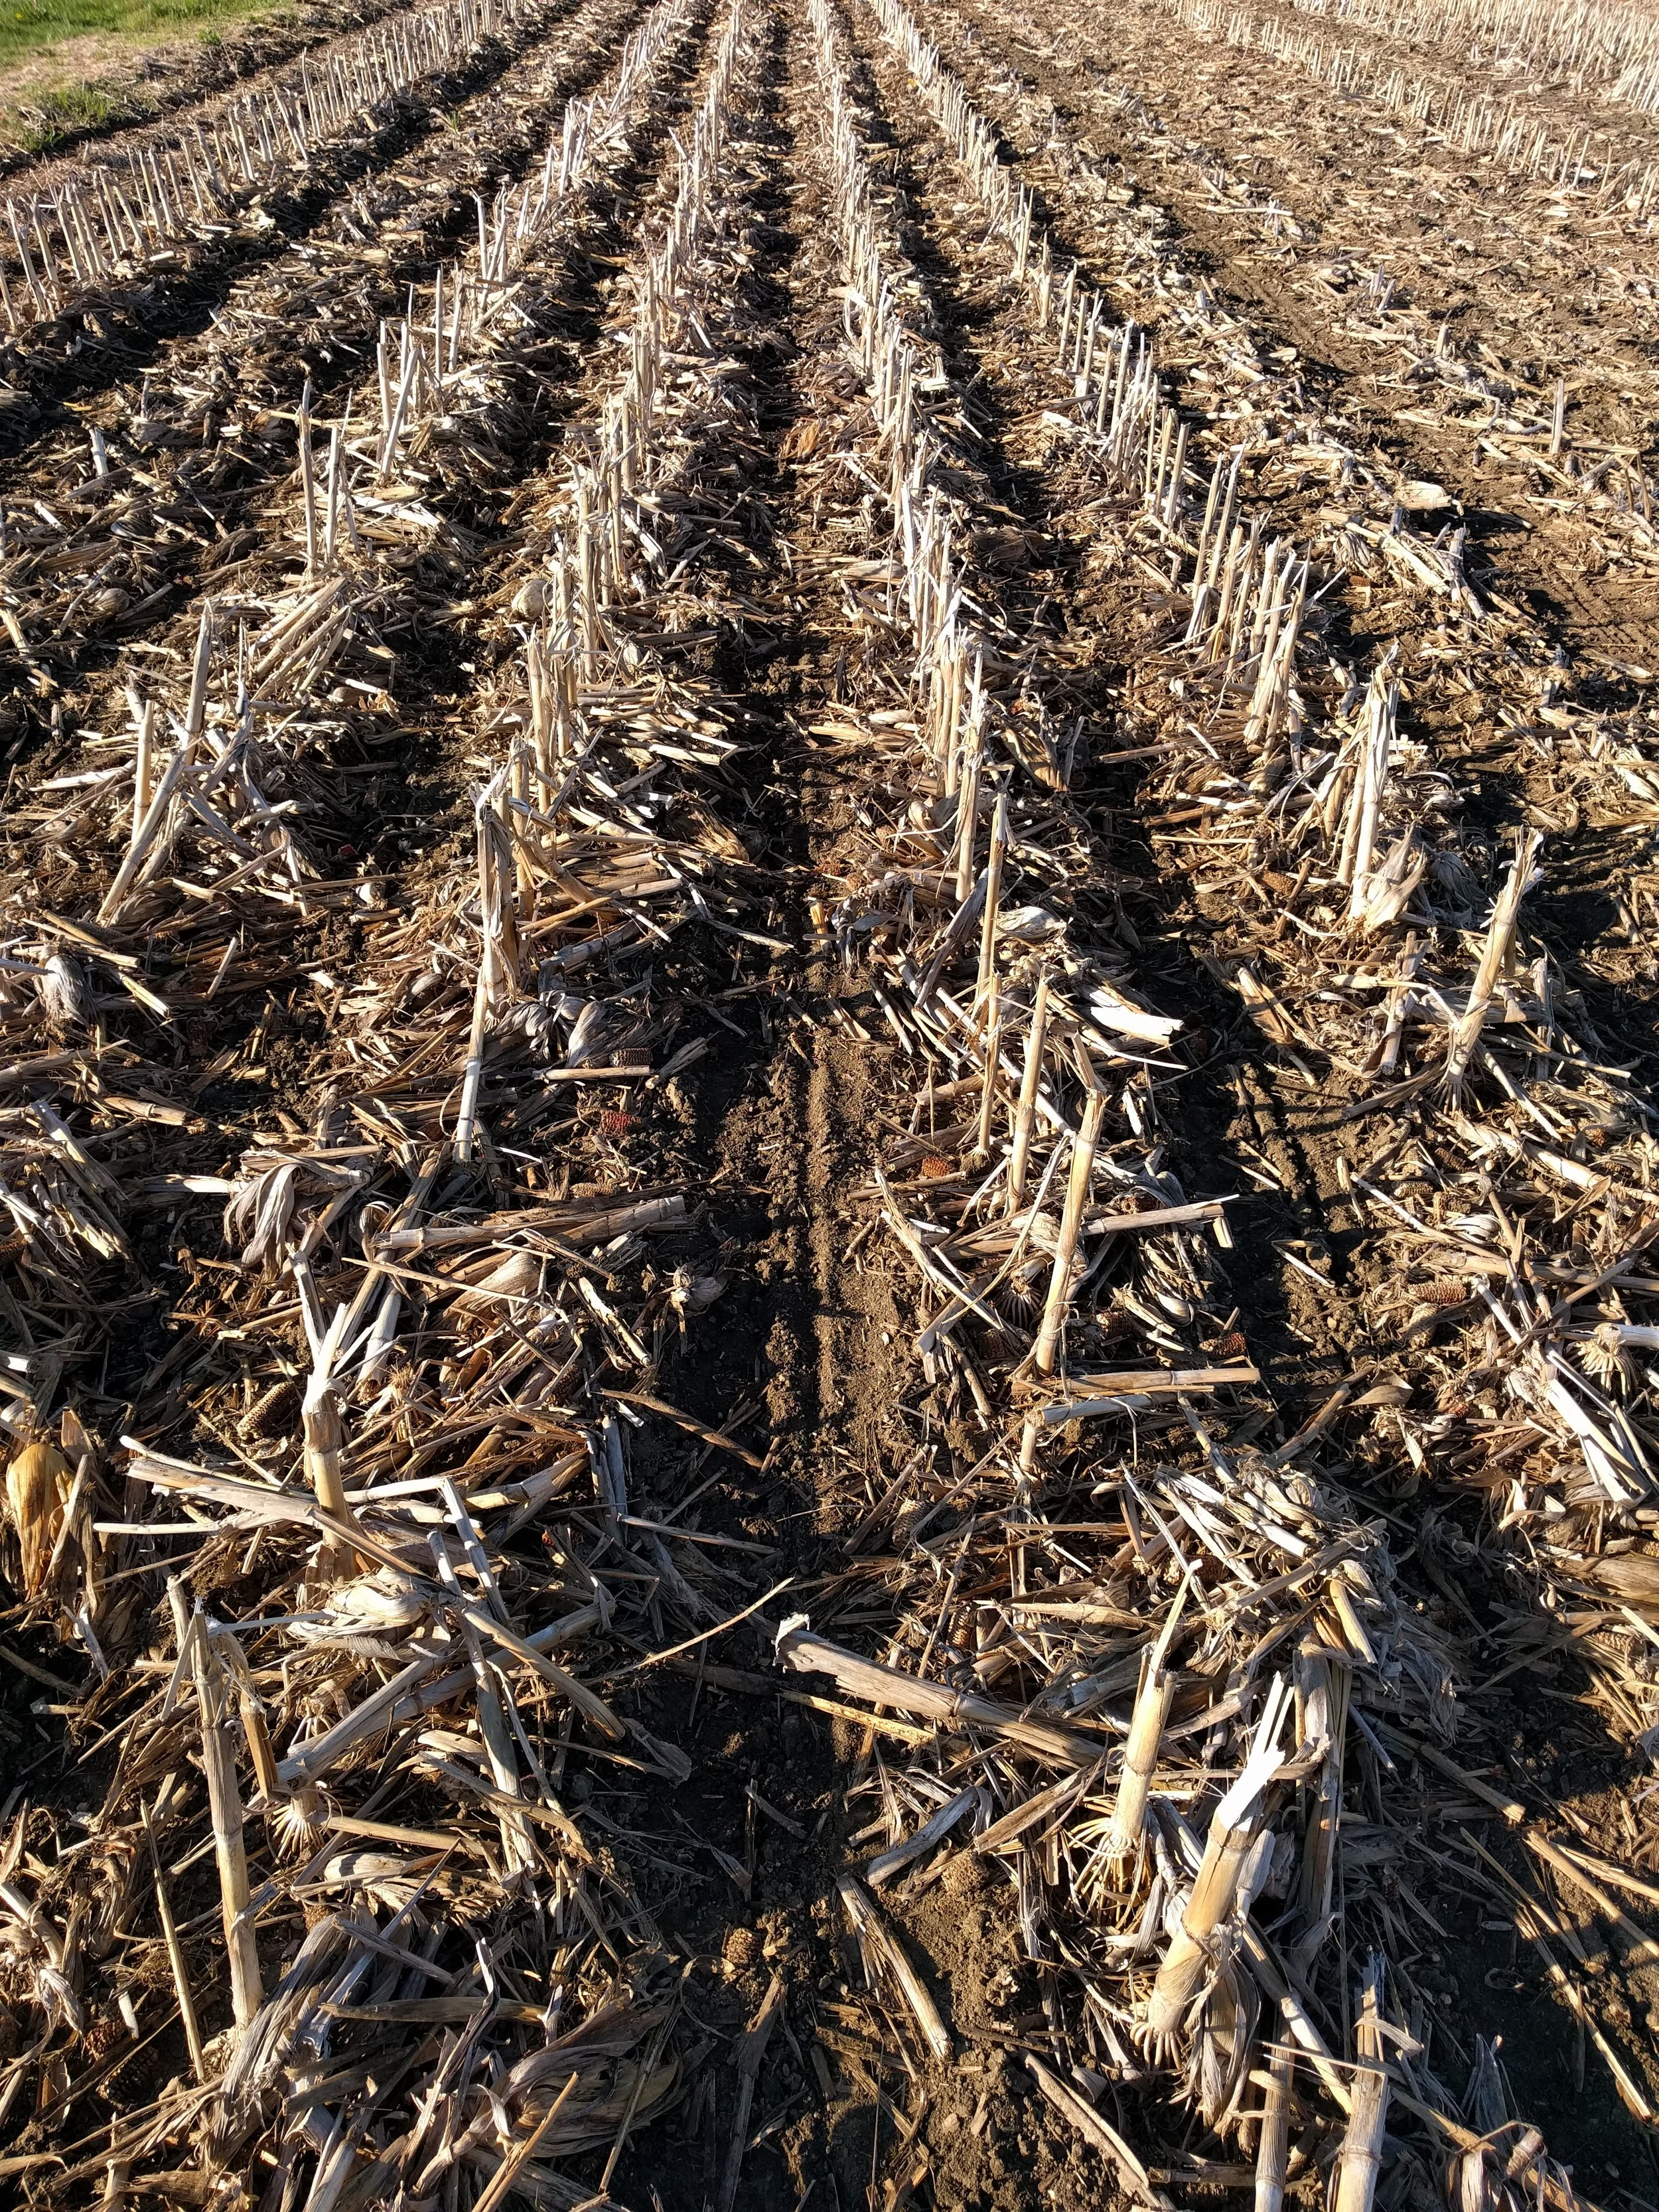 Freshly planted rows of corn between the previous year's untouched corn stalks. Photo credit   The Farmer's Life